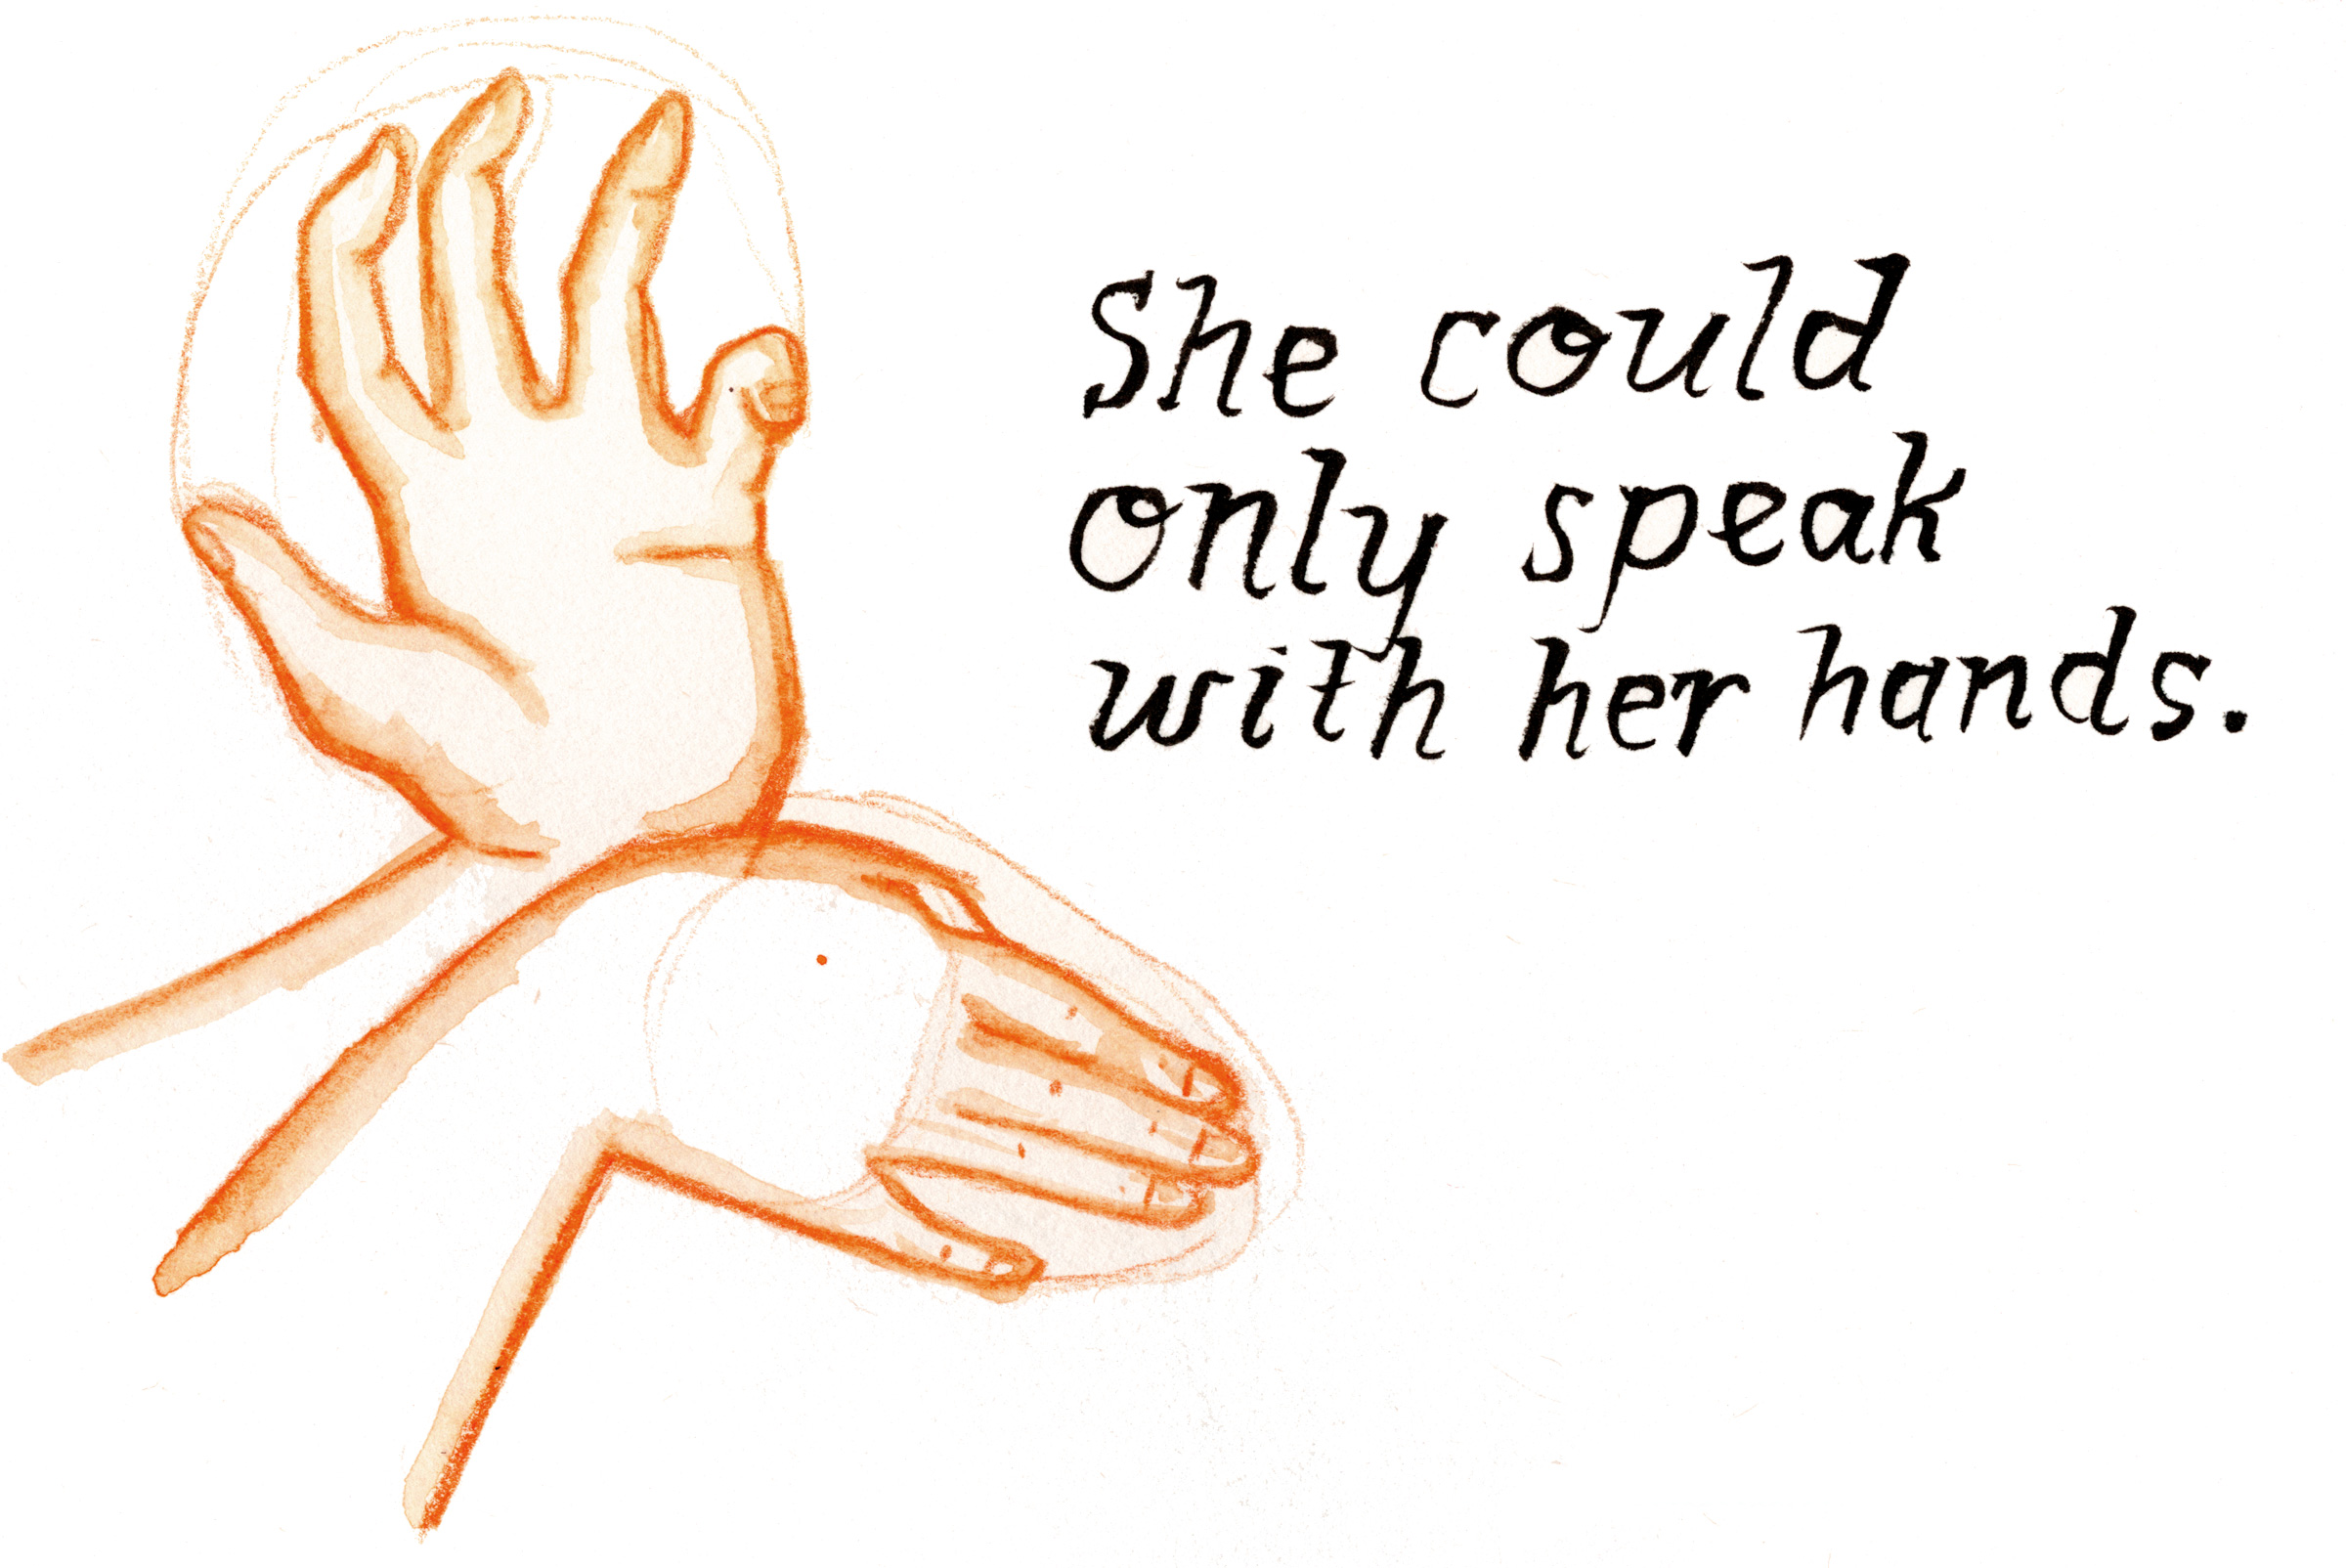 She Could Only Speak with Her Hands, water-soluble pencil and ink, 2014